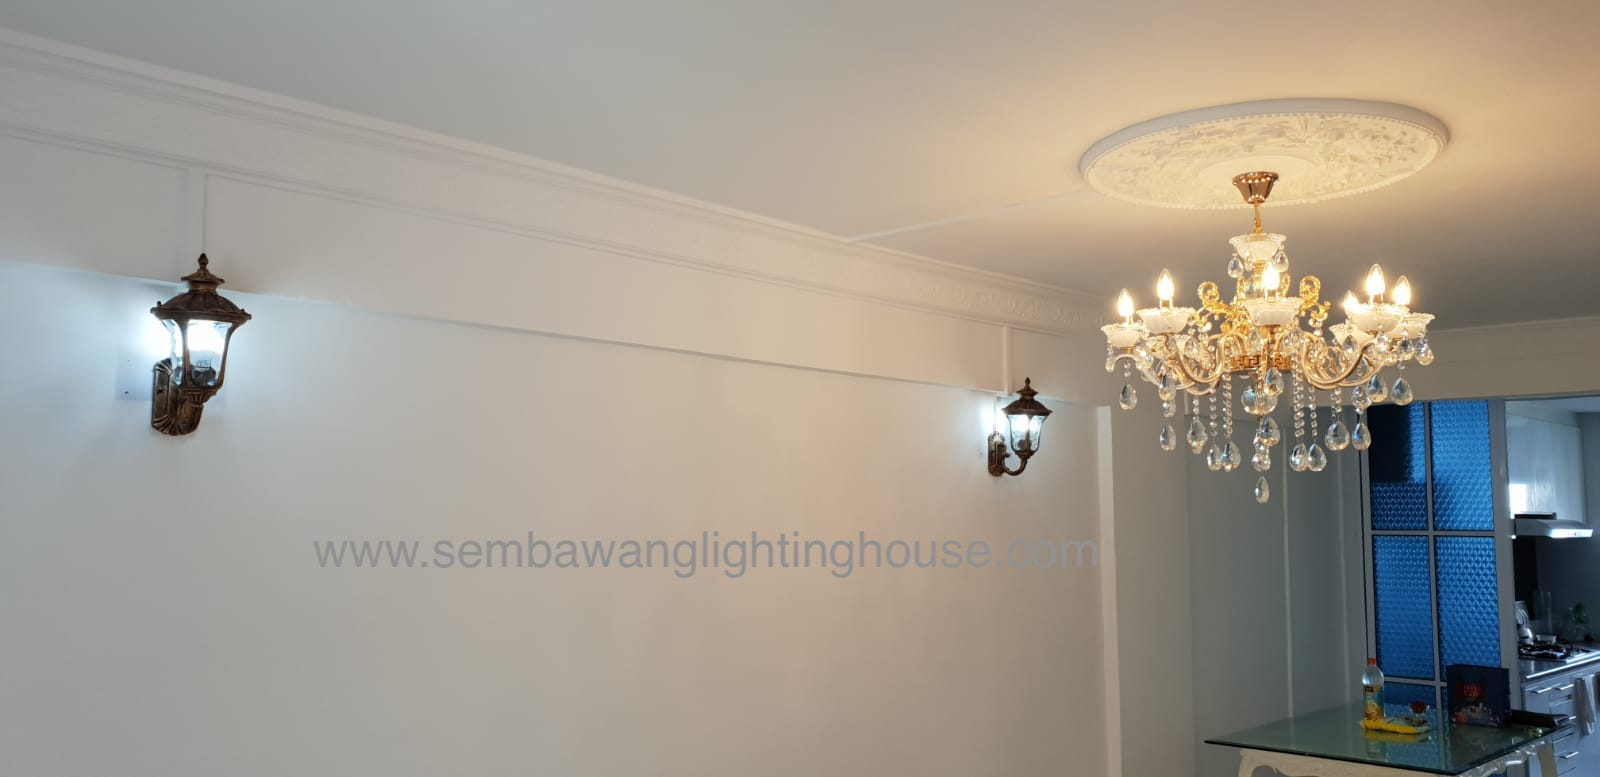 13-led-antique-wall-lamp-and-gold-chandelier-hdb-sembawang-lighting-house.jpg